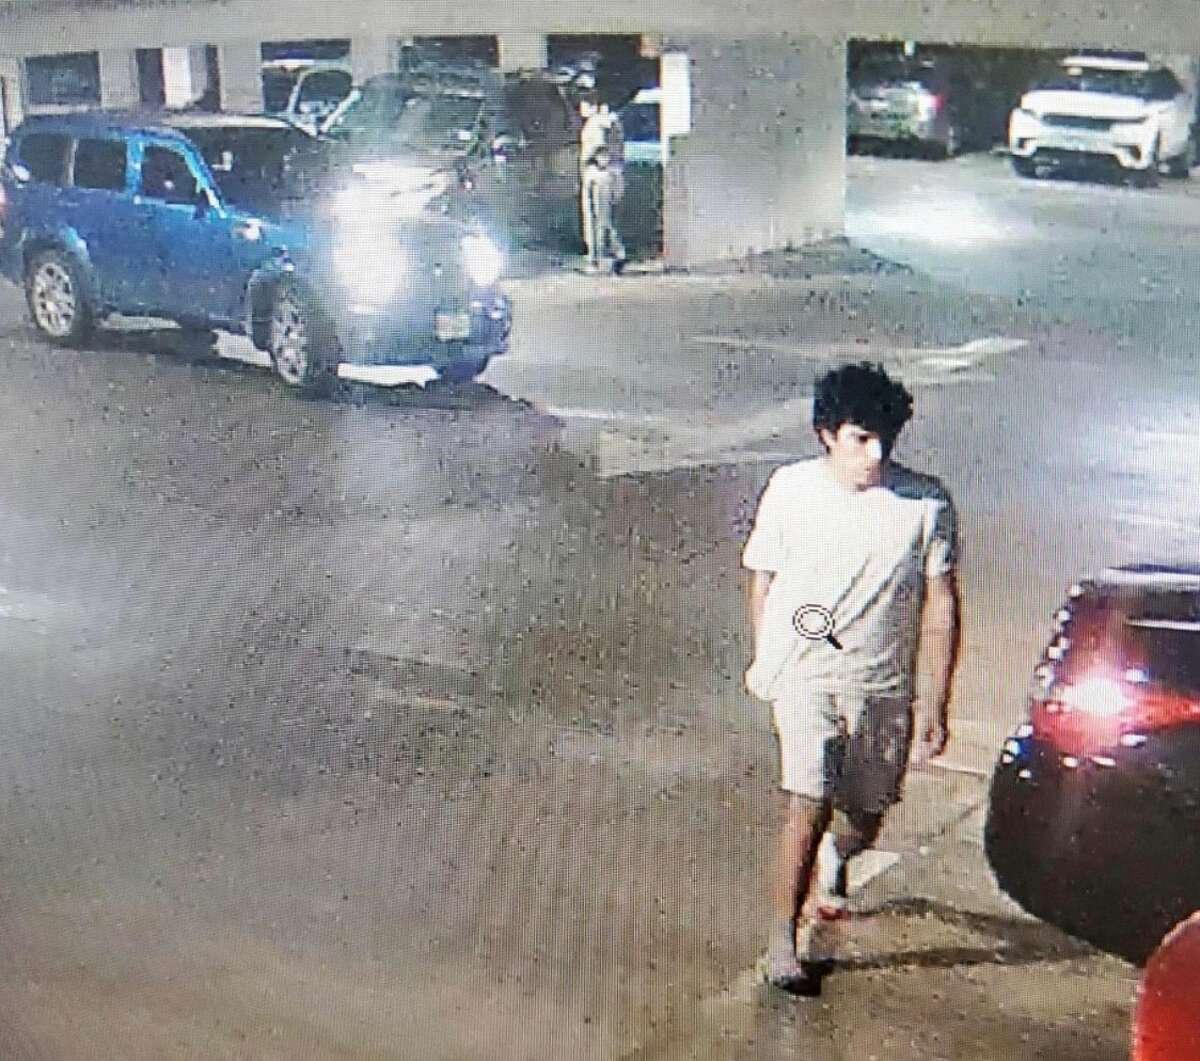 Midland County Hospital Police Department is seeking information about a vehicle burglary that occurred early Saturday morning at the Midland Memorial Hospital parking garage.